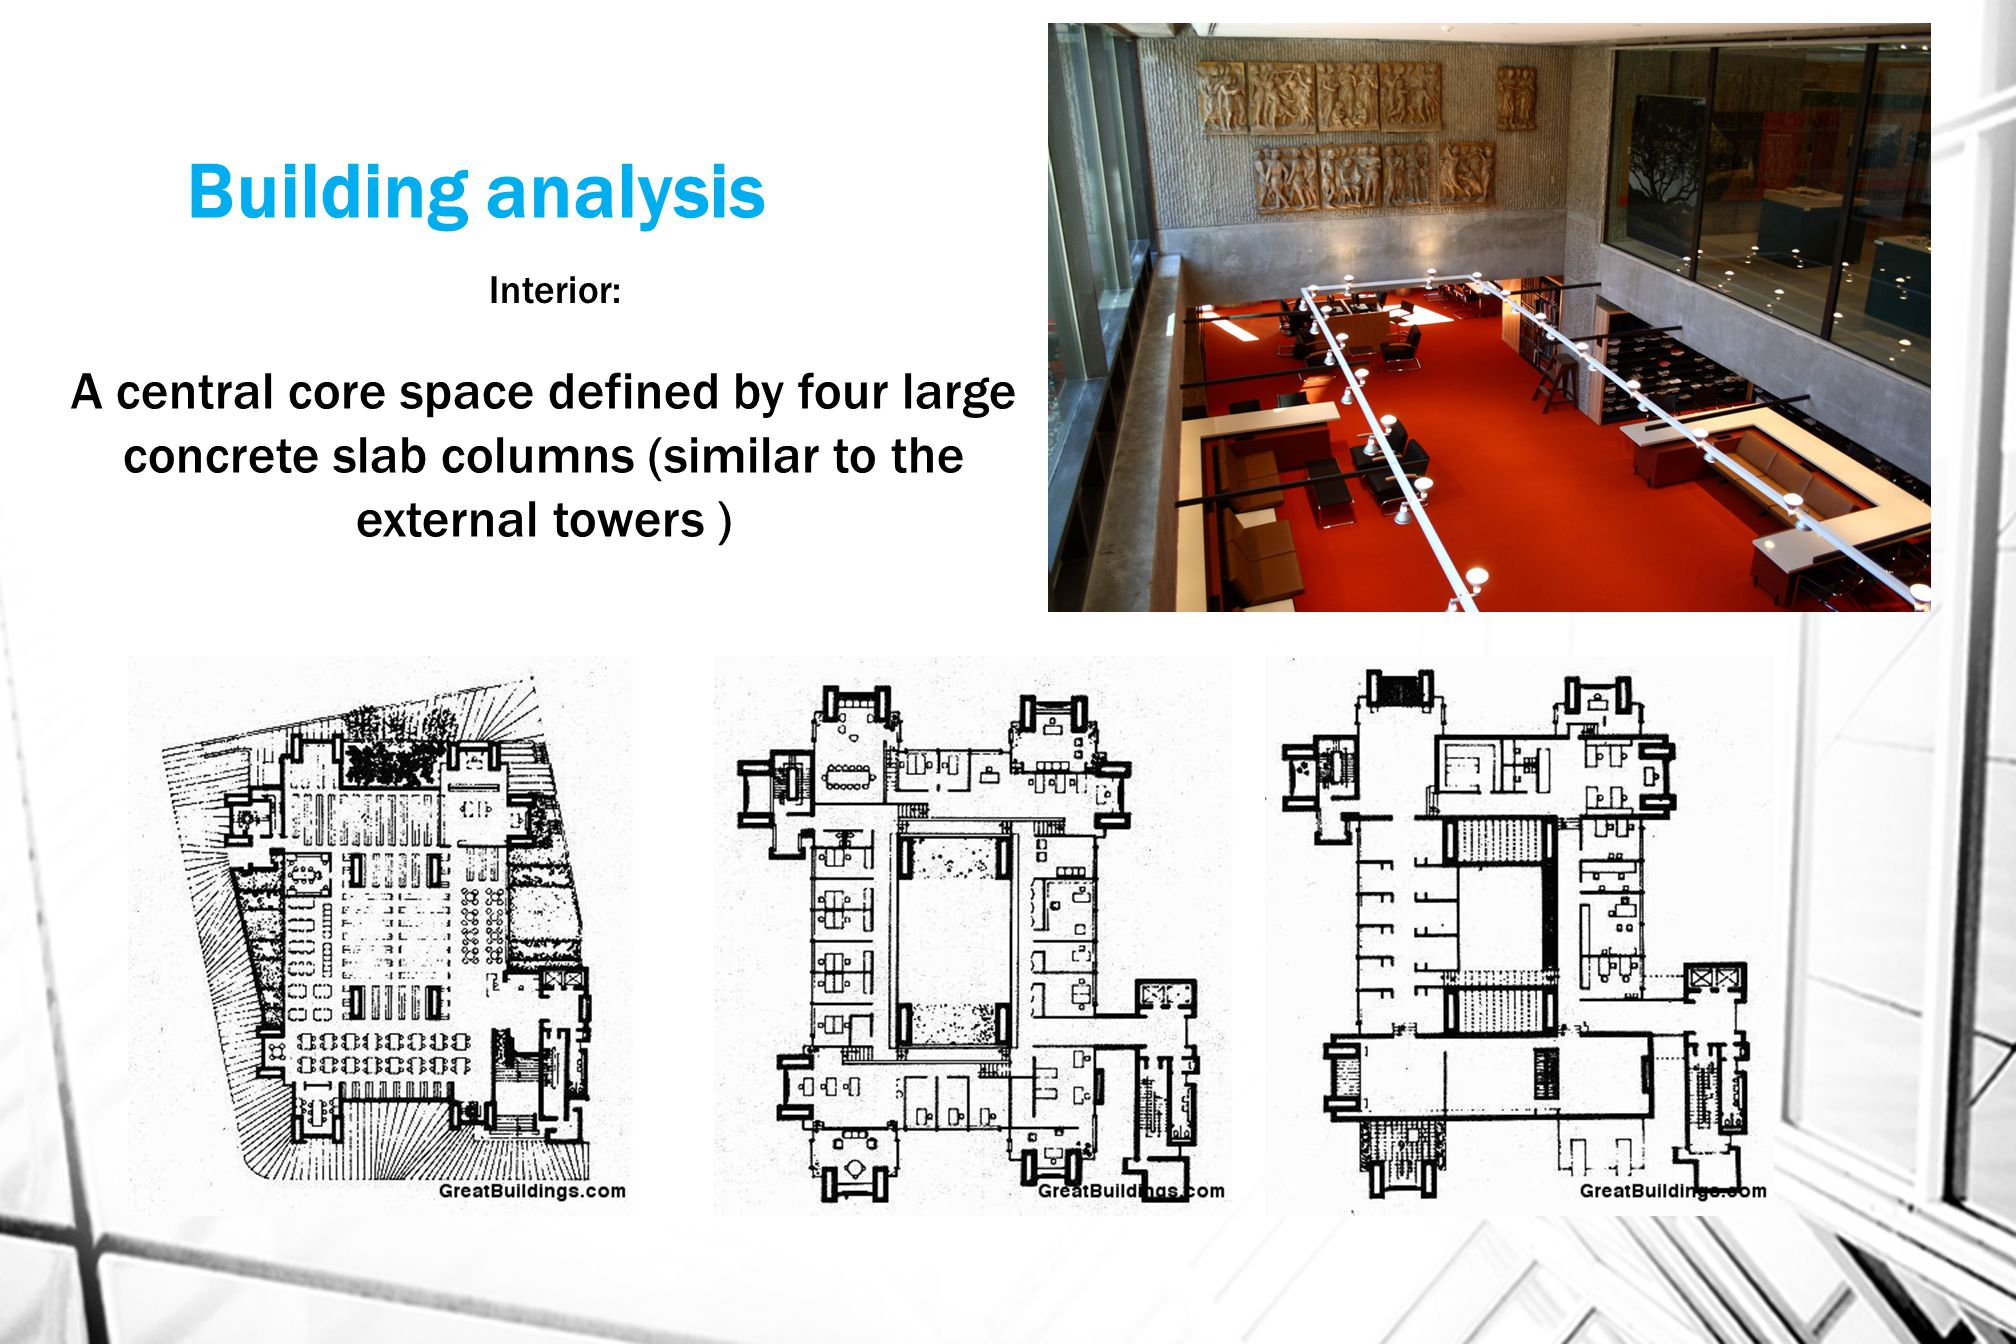 Building analysis Interior: A central core space defined by four large concrete slab columns (similar to the external towers )